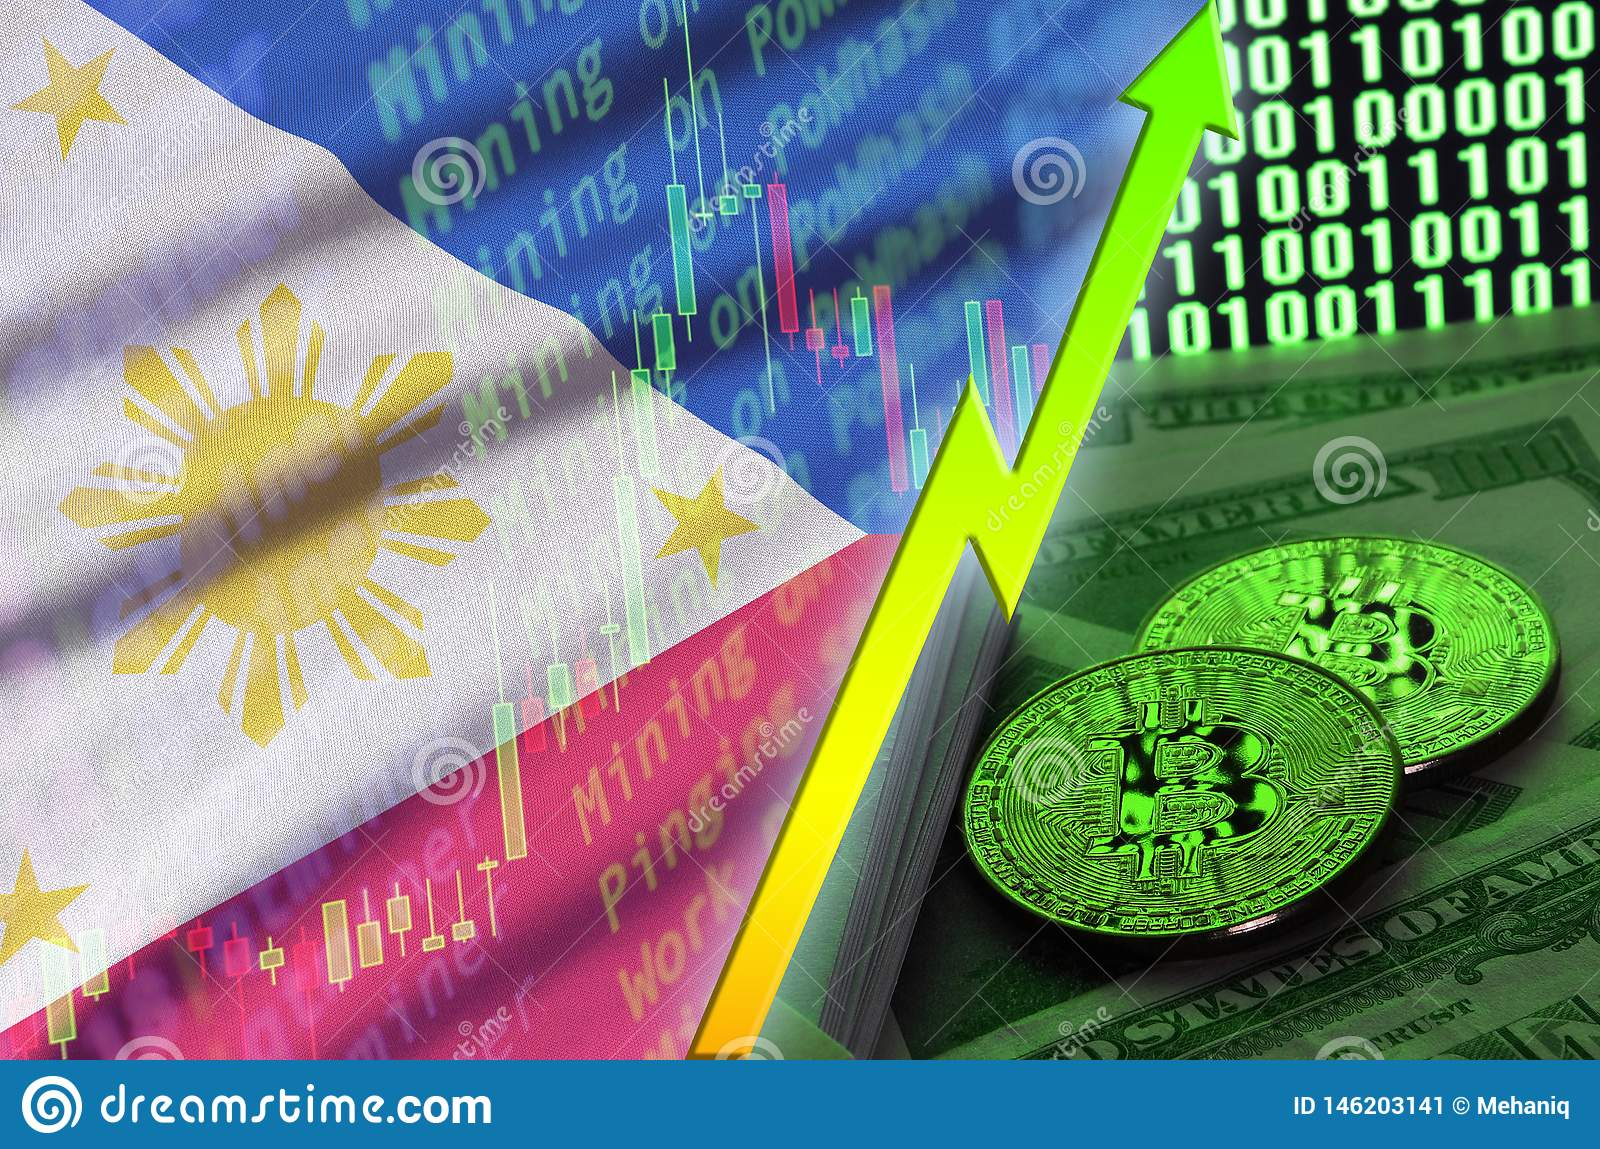 Buy and sell bitcoins philippines flag maximum bets on roulette